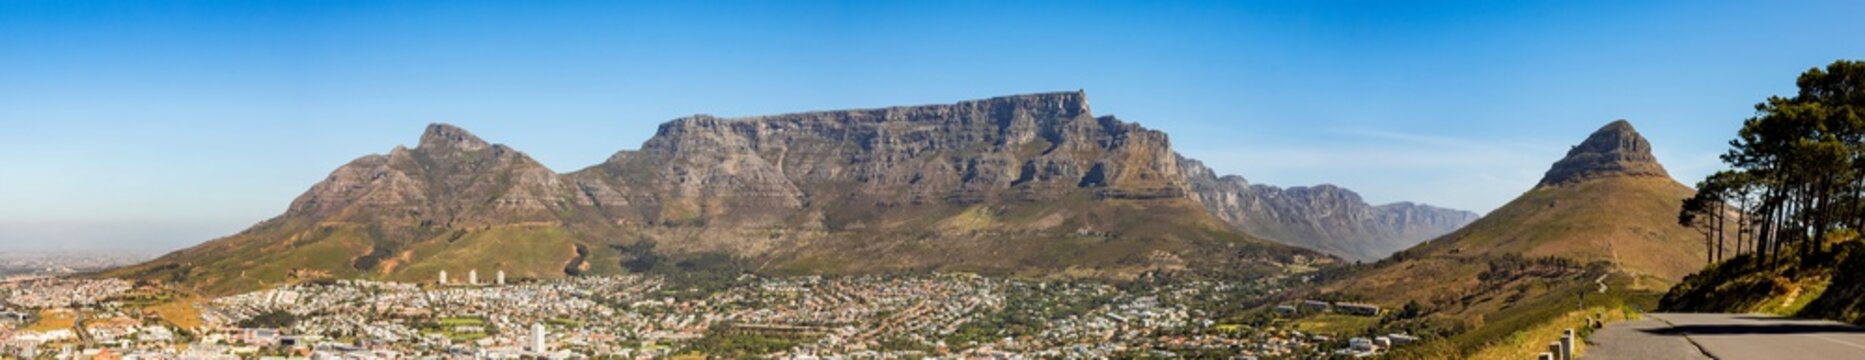 Elevated Panoramic view of Table Mountain and surrounds in Cape Town